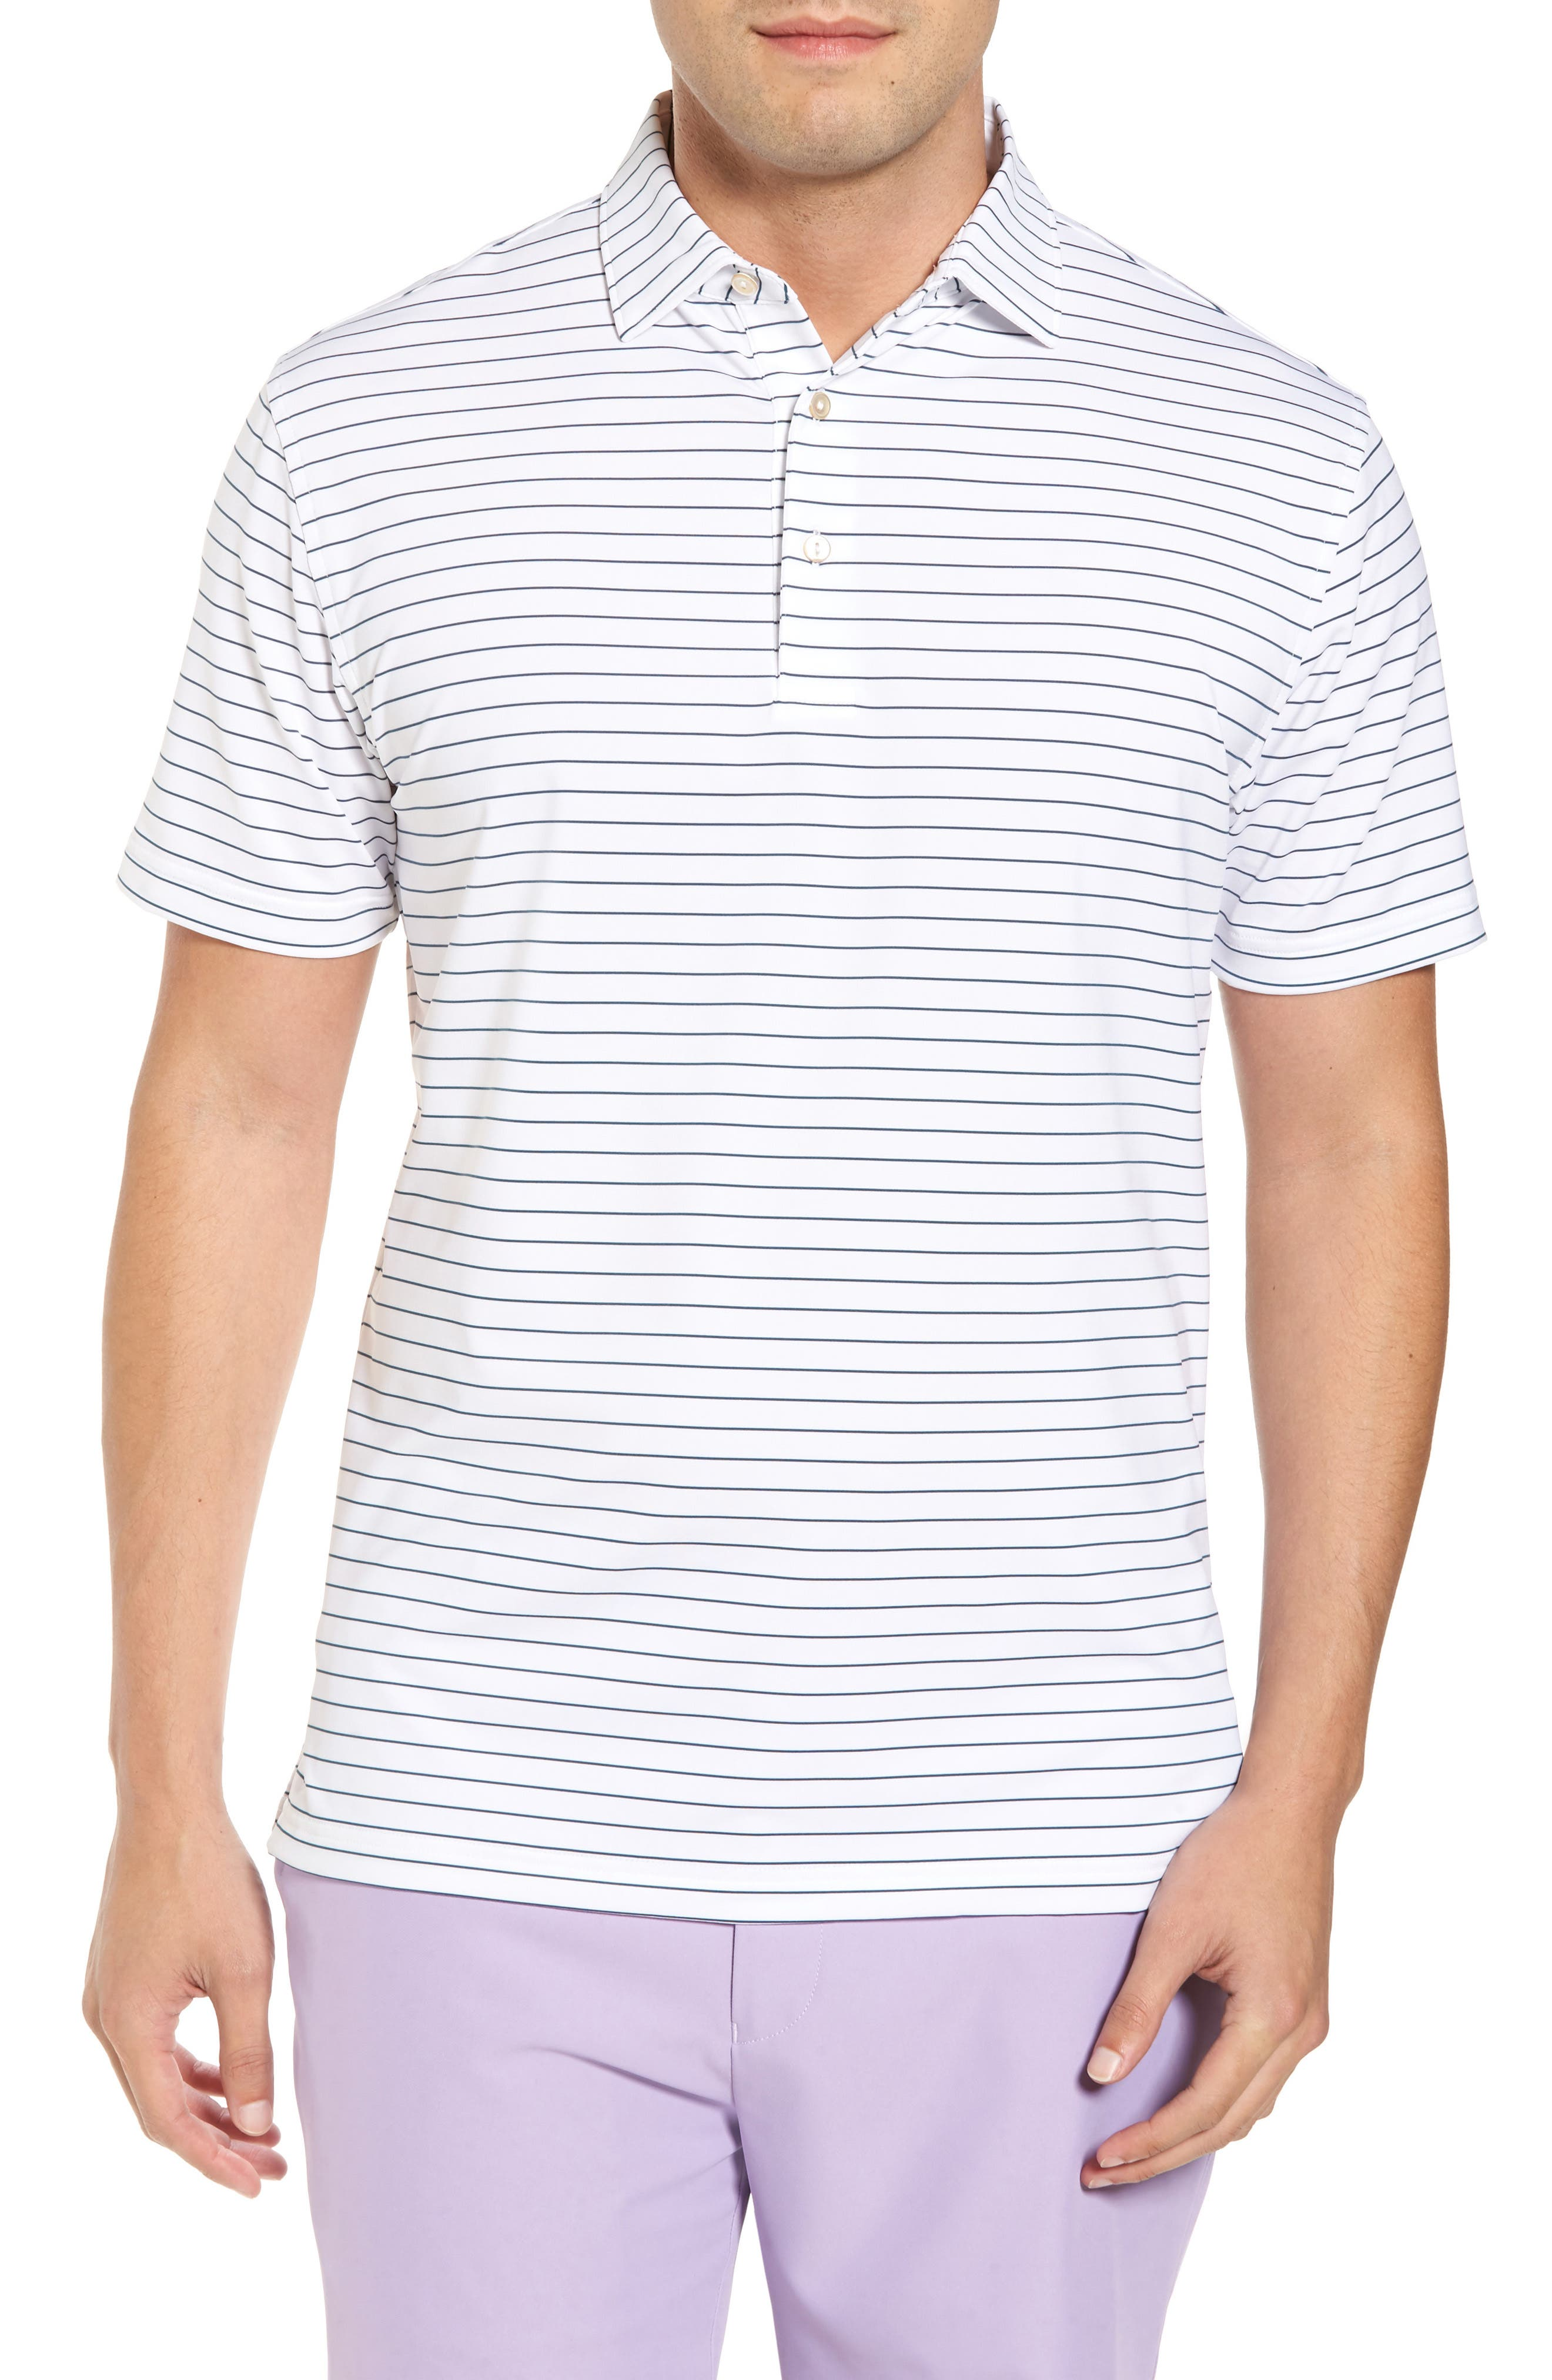 Alternate Image 1 Selected - Peter Millar Halifax Pinstripe Stretch Jersey Polo